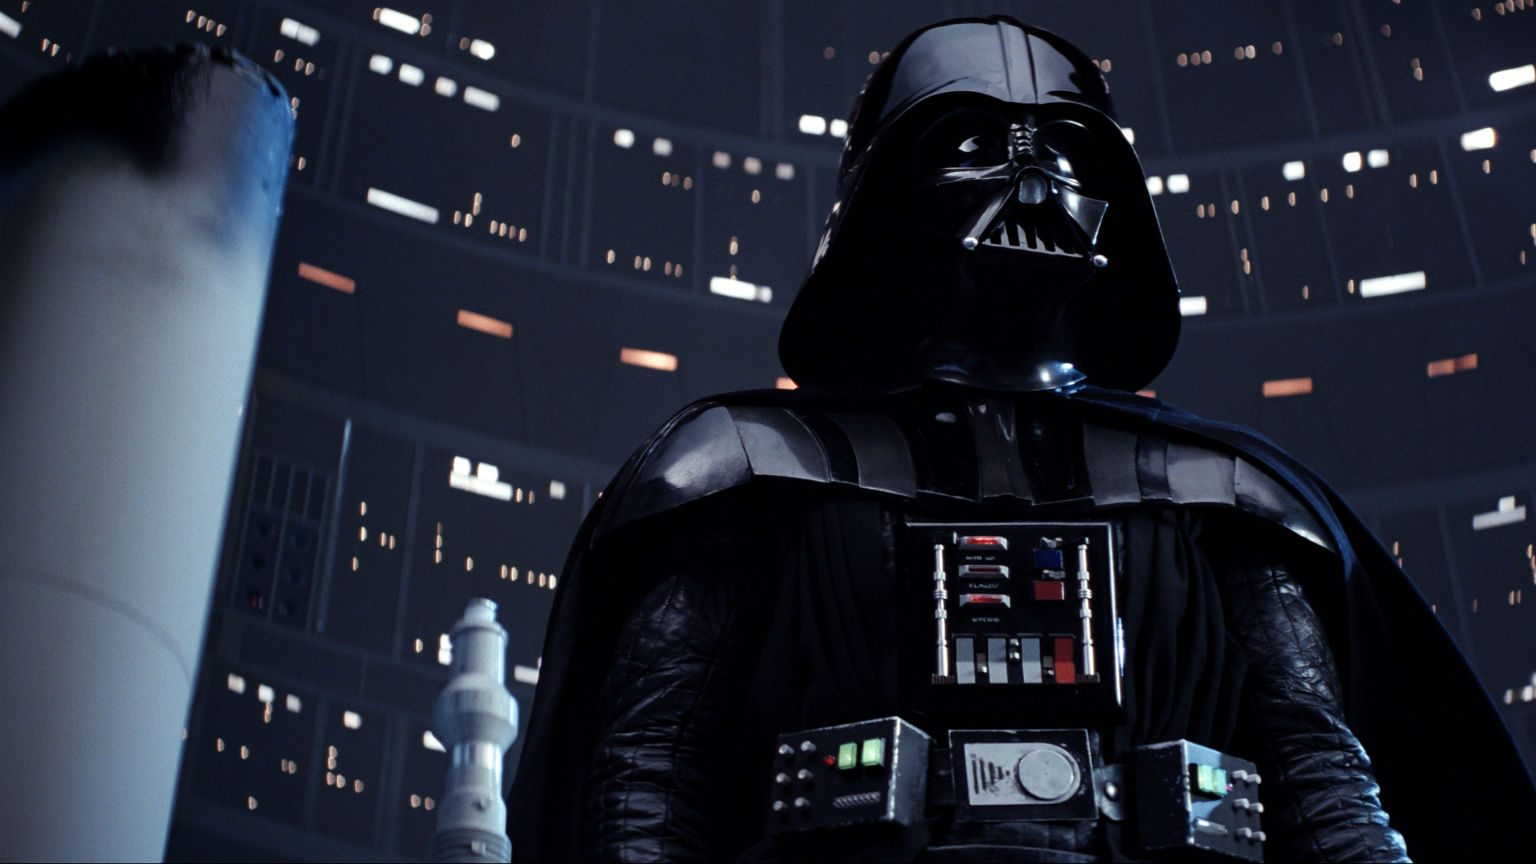 Picture of Darth Vader from Empire Strikes back